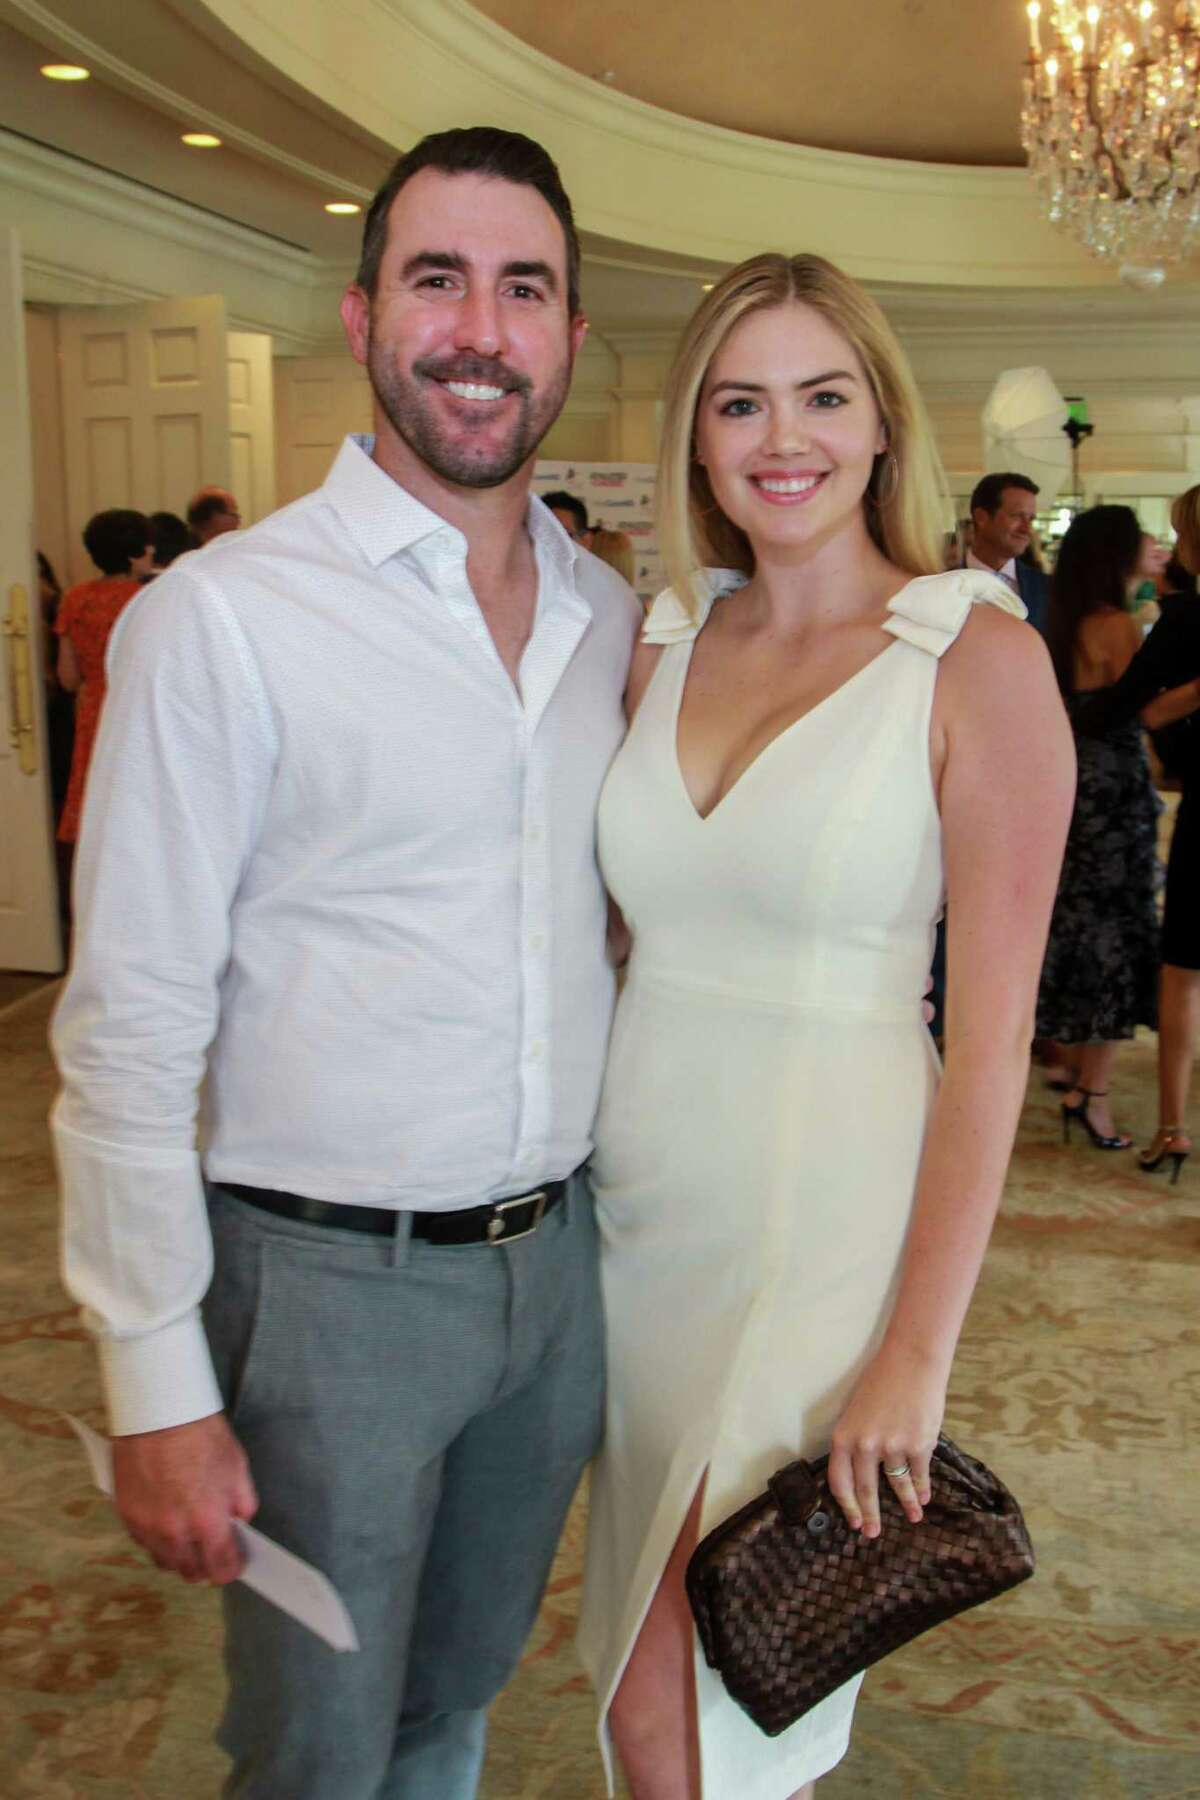 Justin Verlander and Kate Upton at the Huntington's Disease luncheon at River Oaks Country Club on August 22, 2019.